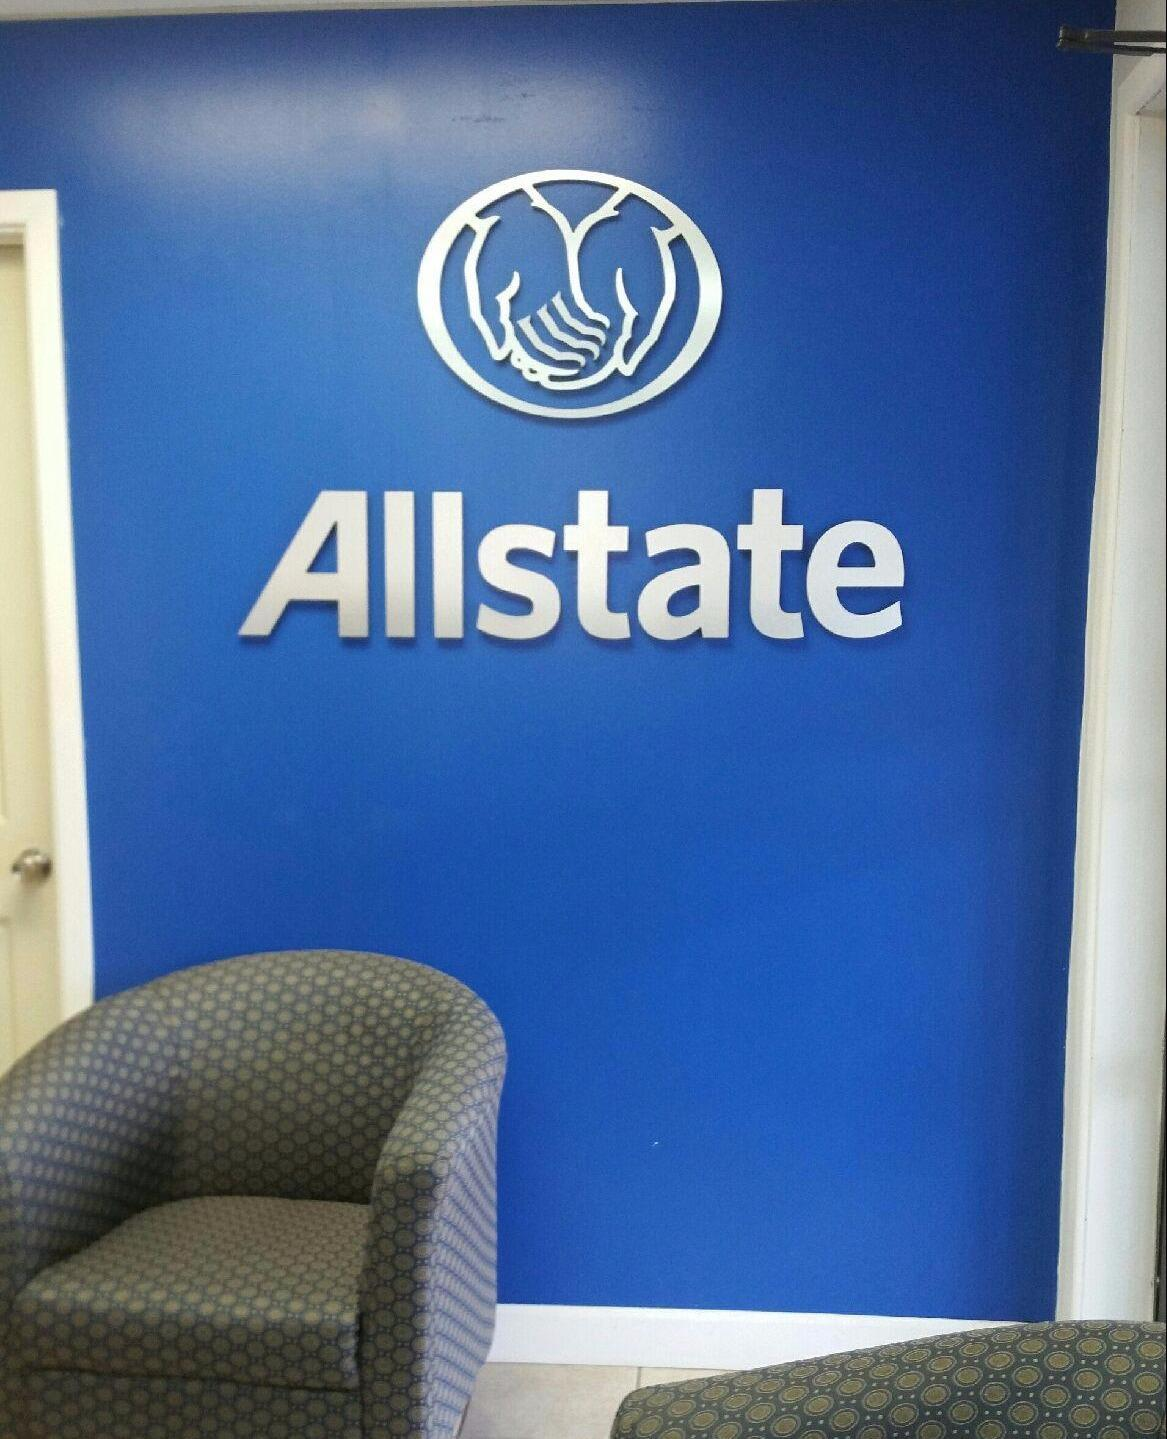 Edward Anderson: Allstate Insurance image 3